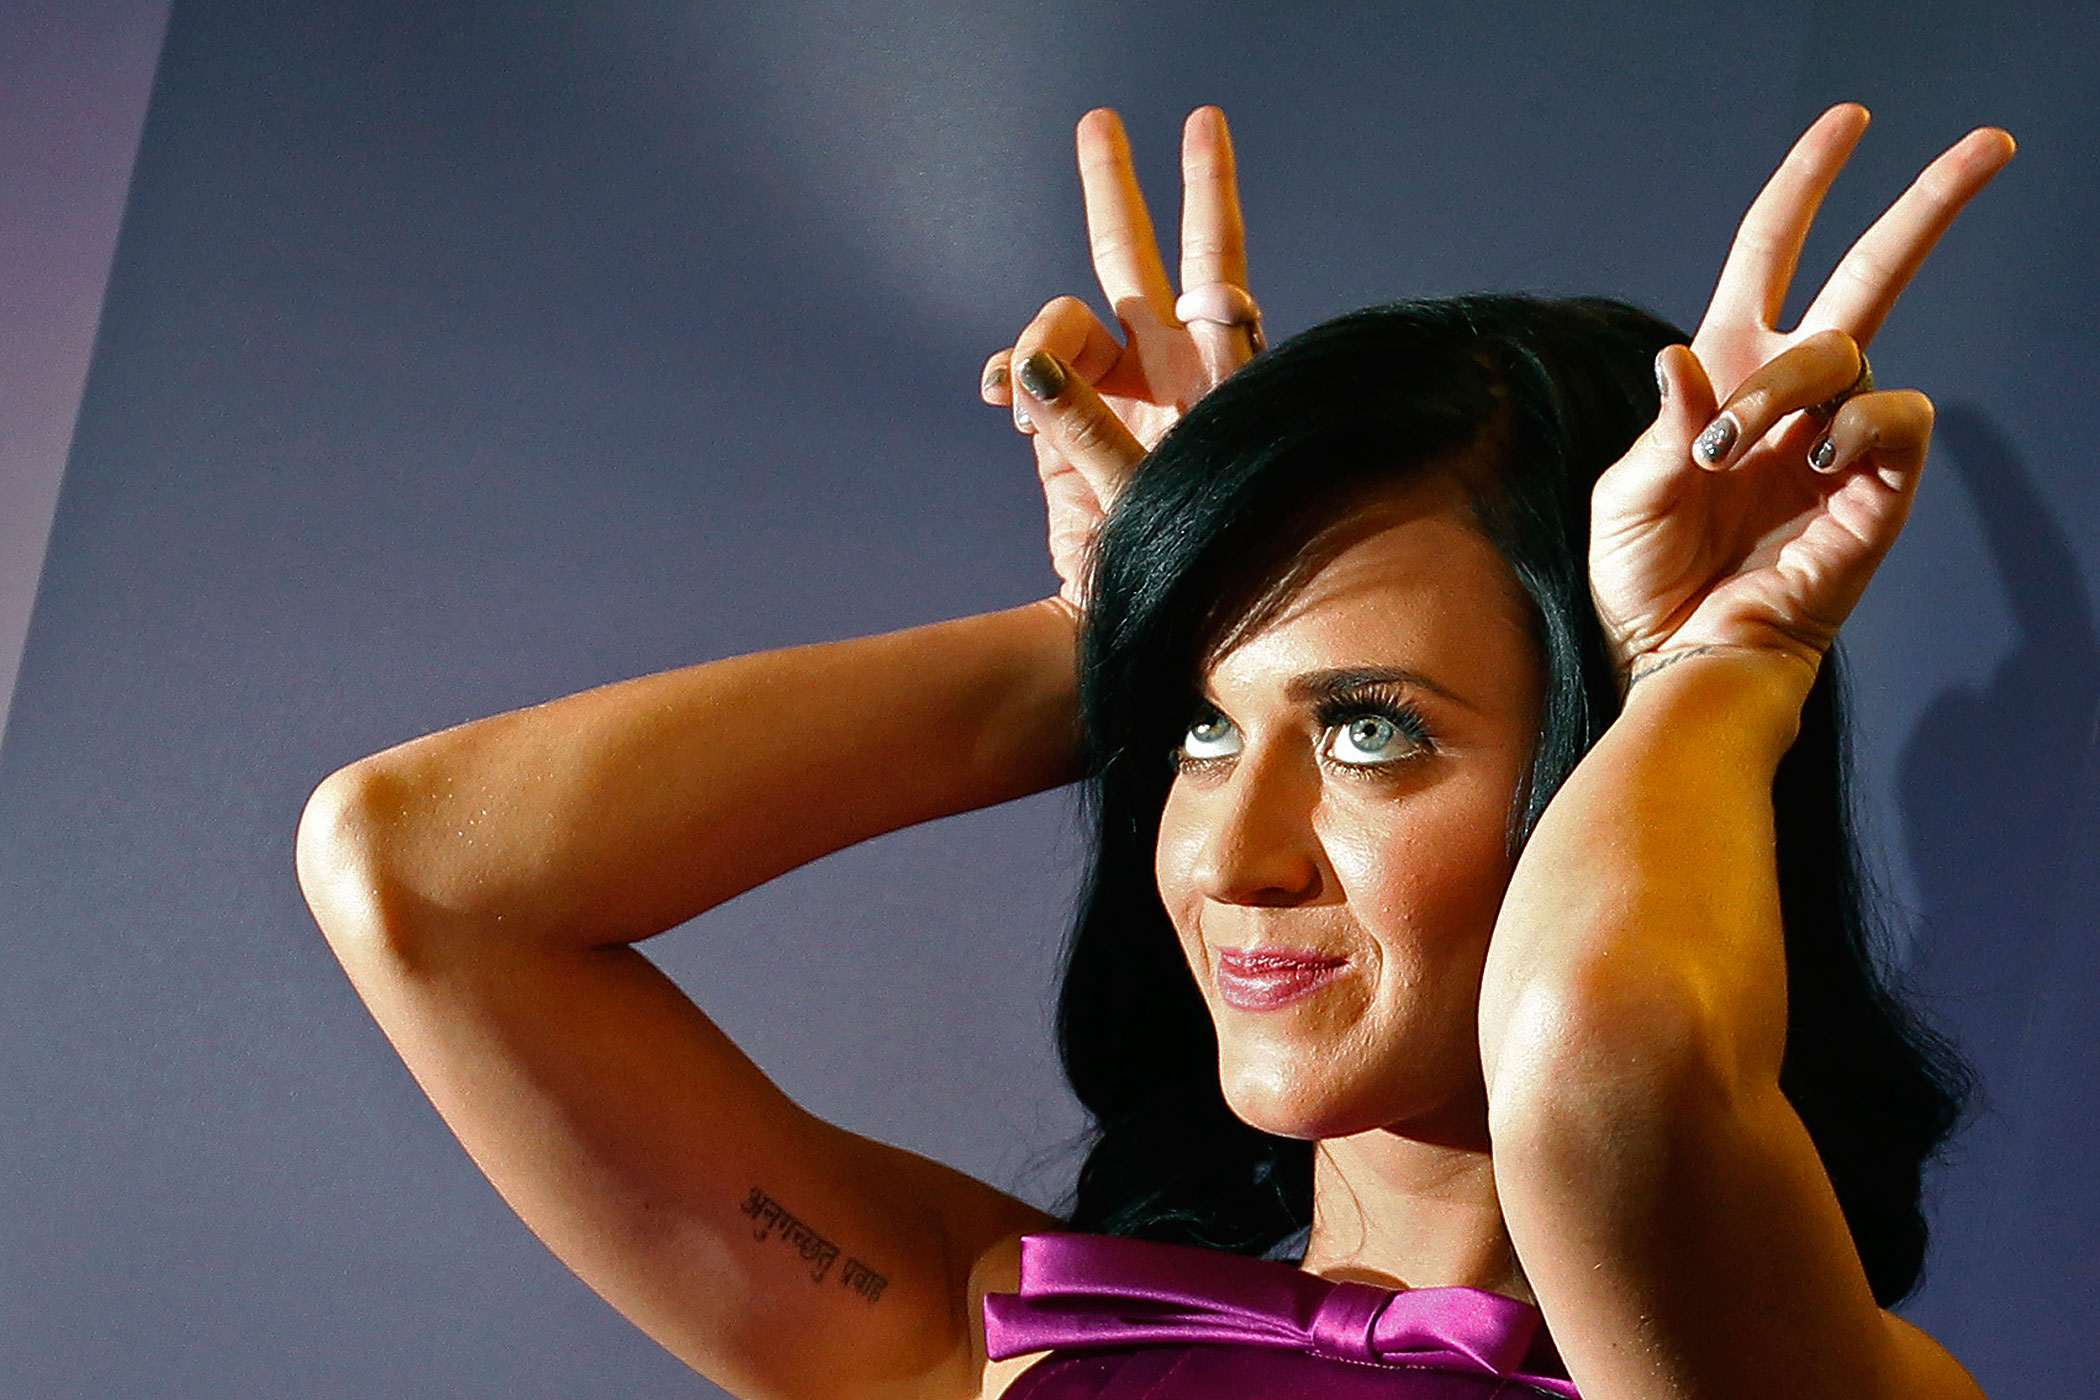 Katy Perry poses during the launch of her fragrance 'Purr' at Selfridges department store on Oxford Street in London November 12, 2010.